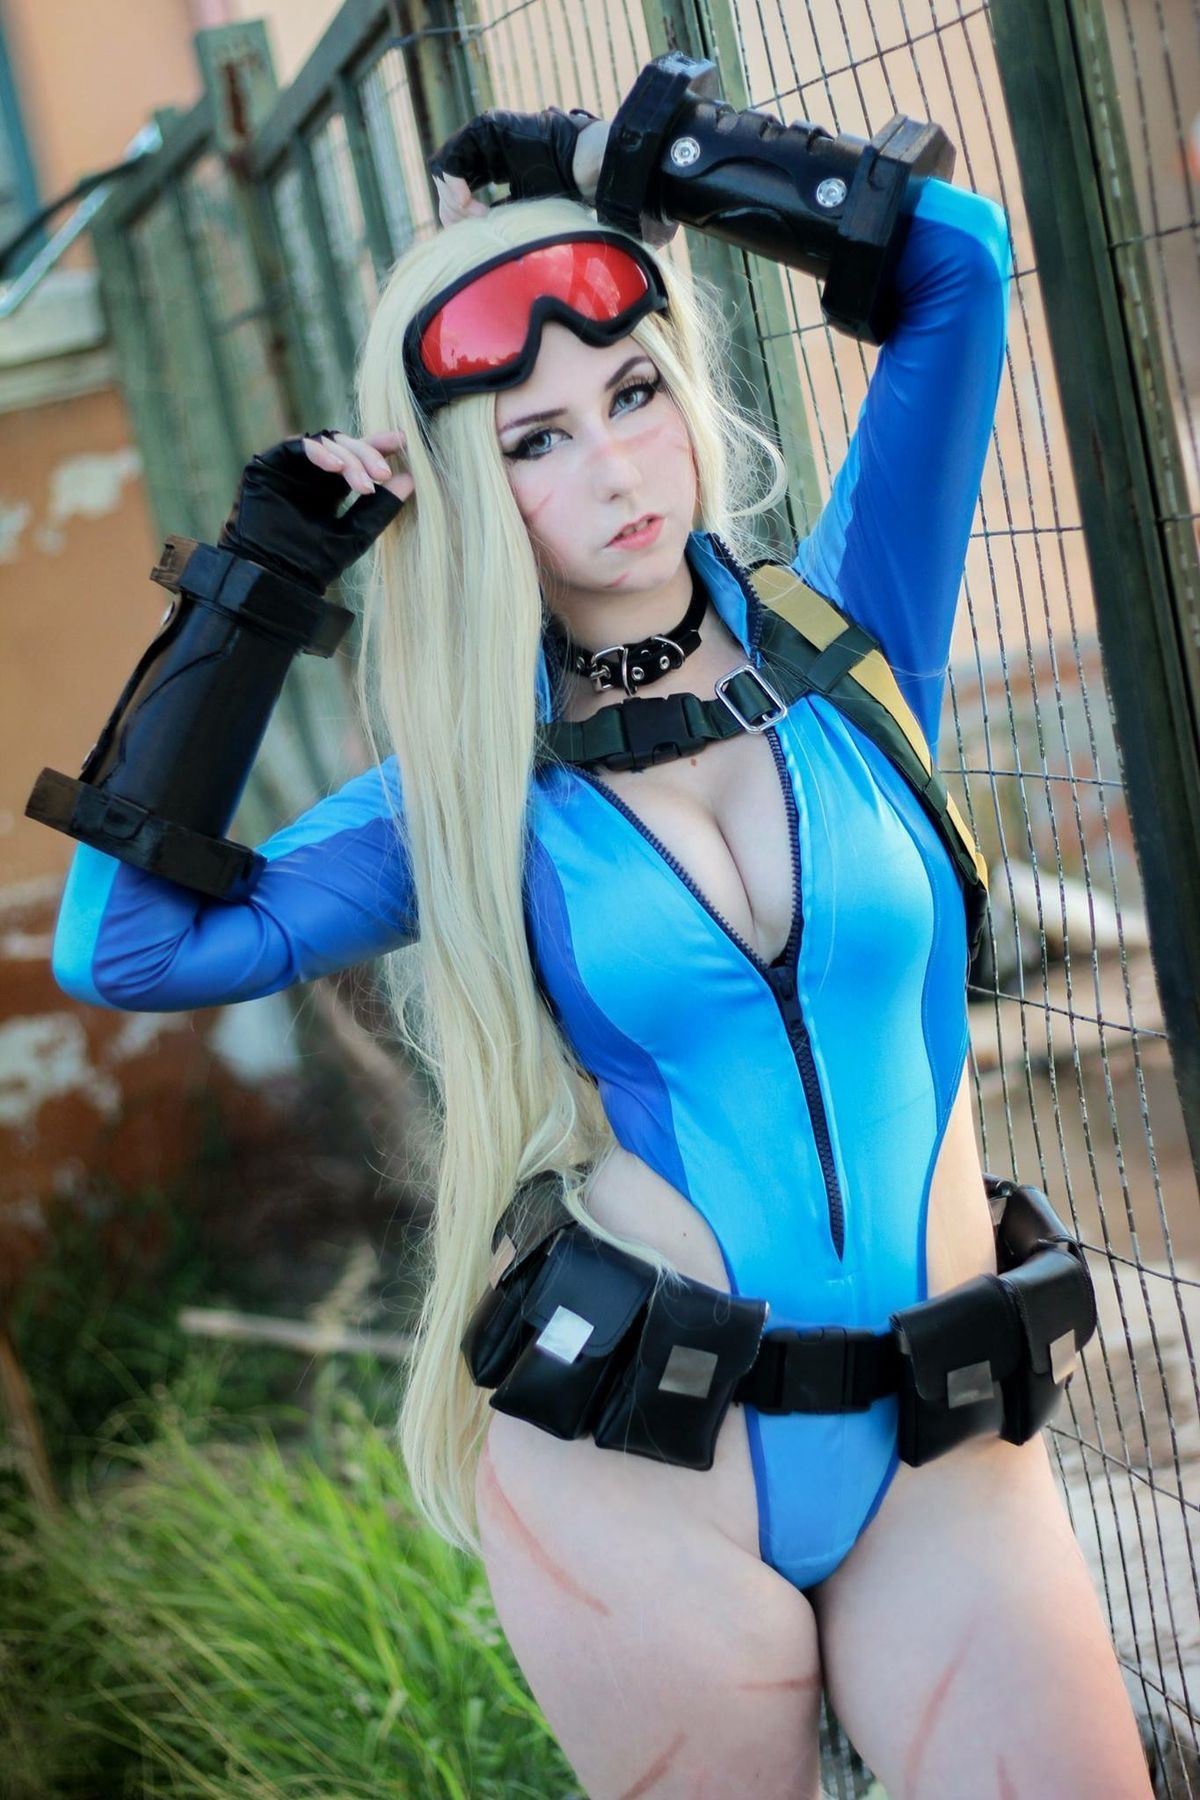 Giu Hellsing as Cammy